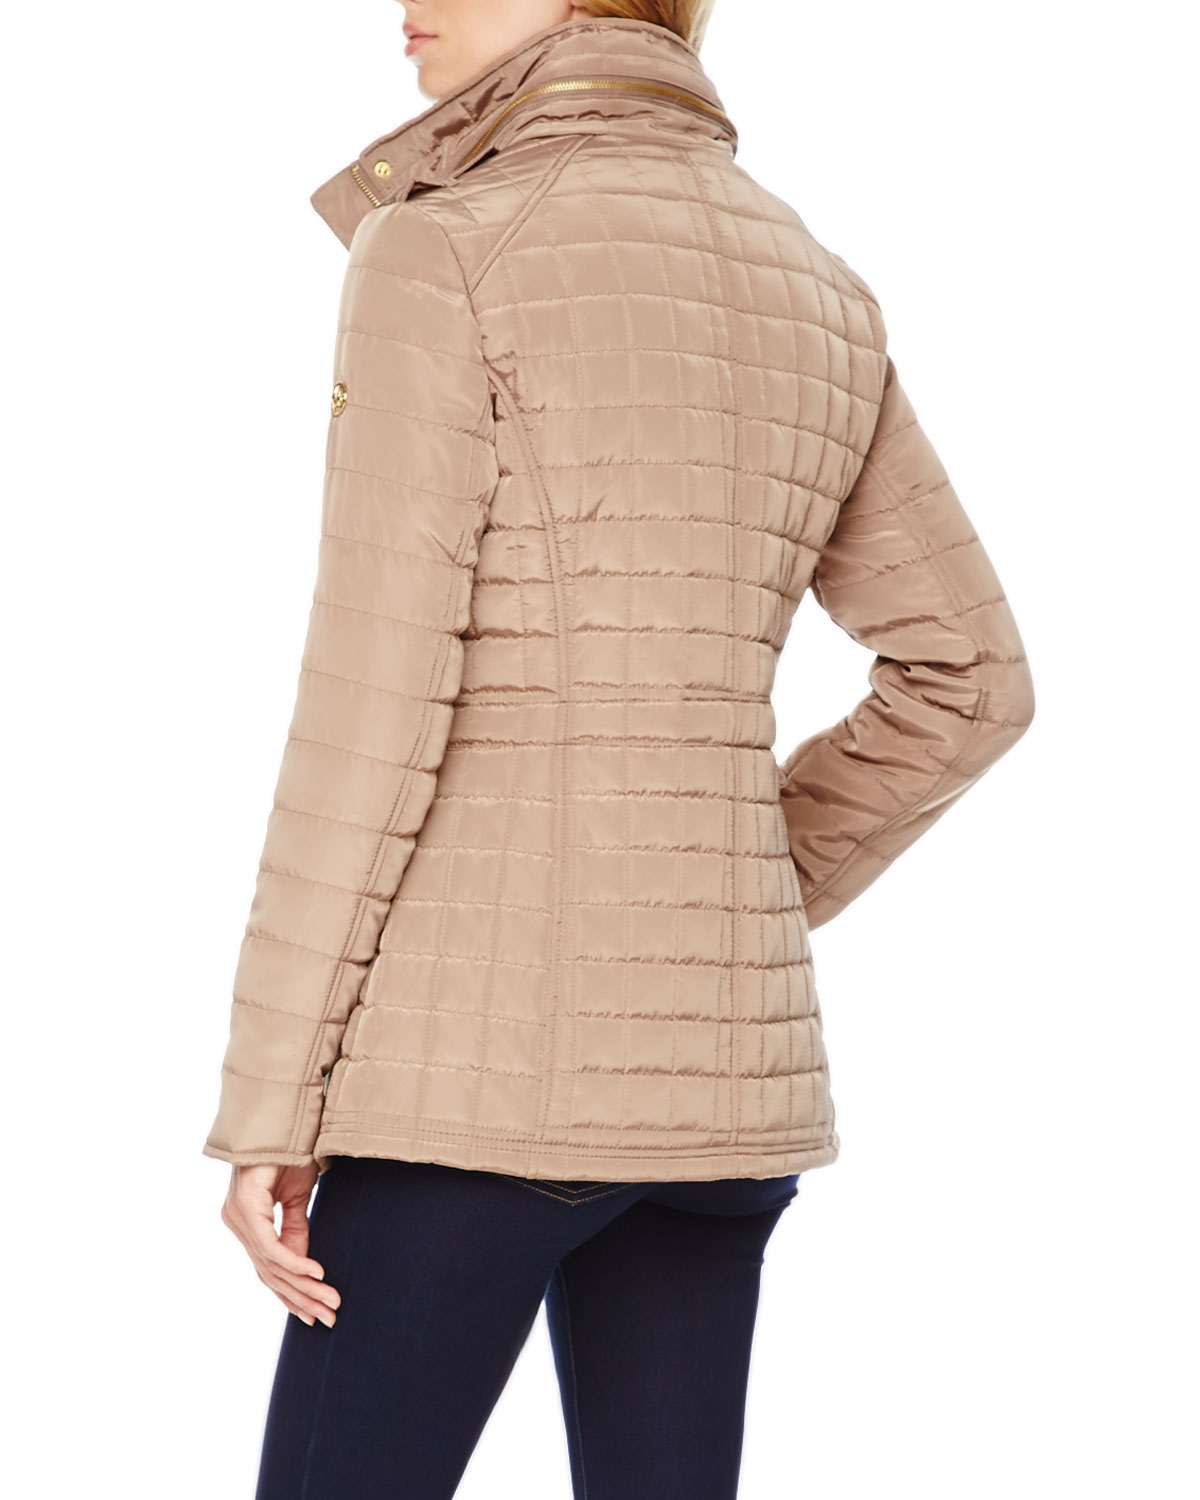 michael kors michael quilted puffer jacket in brown lyst. Black Bedroom Furniture Sets. Home Design Ideas